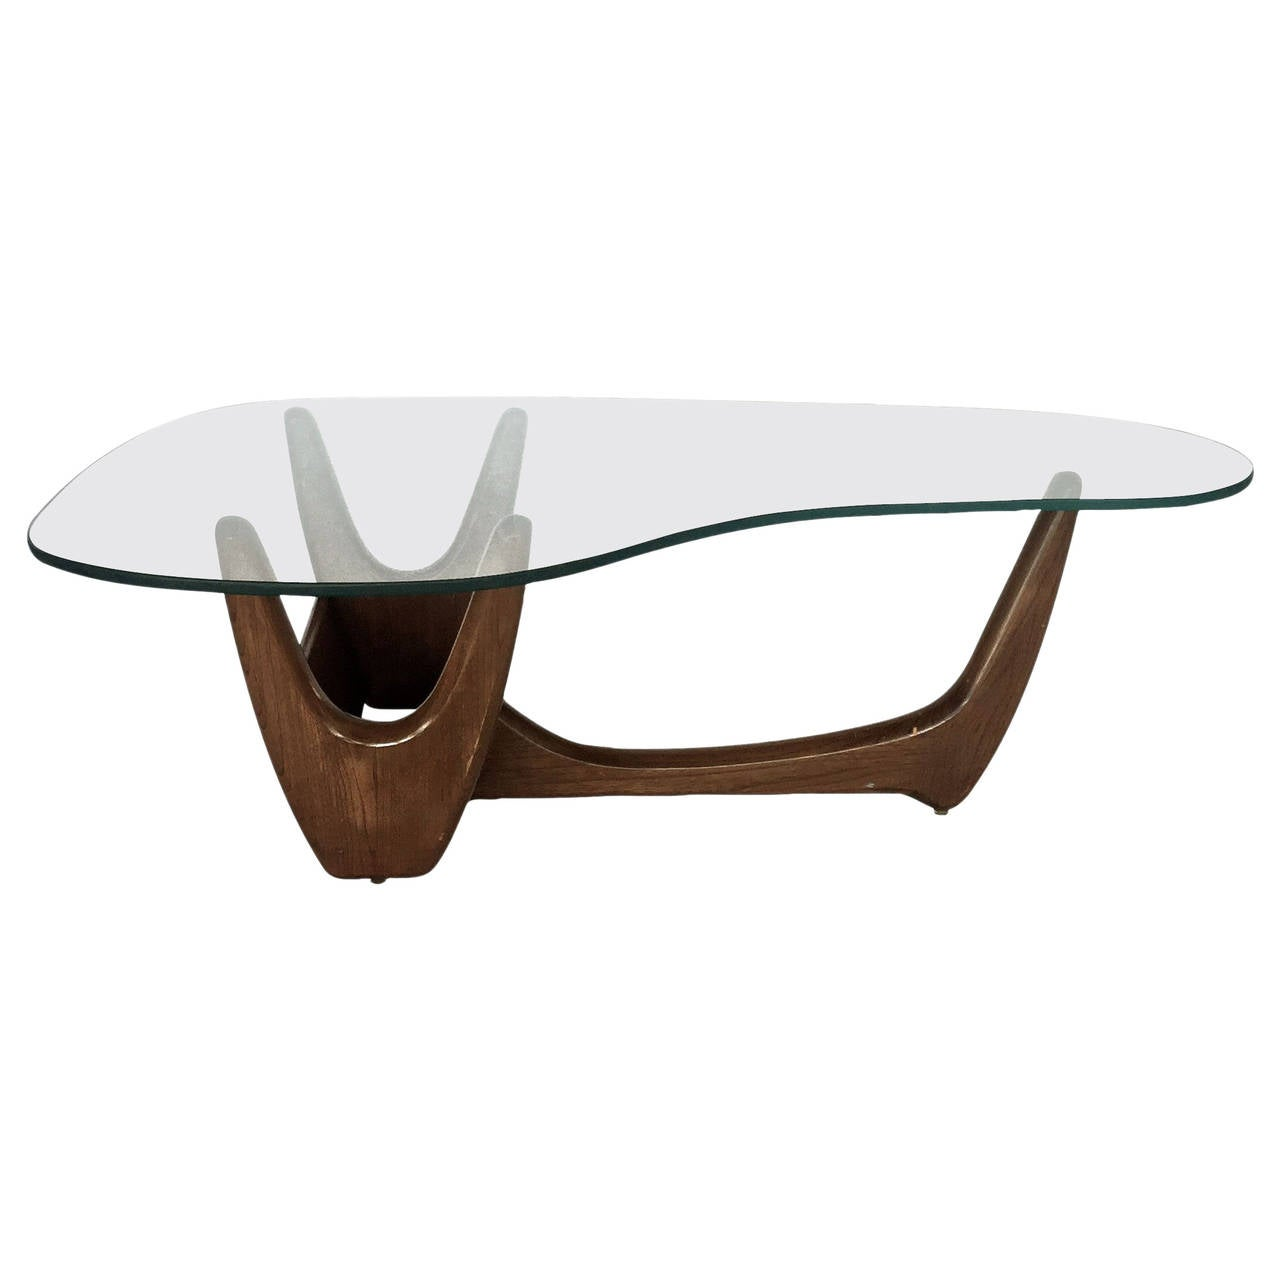 Glass Top Planter Coffee Table By C.E. Waltman For Tonk Mfg Co.   ON SALE